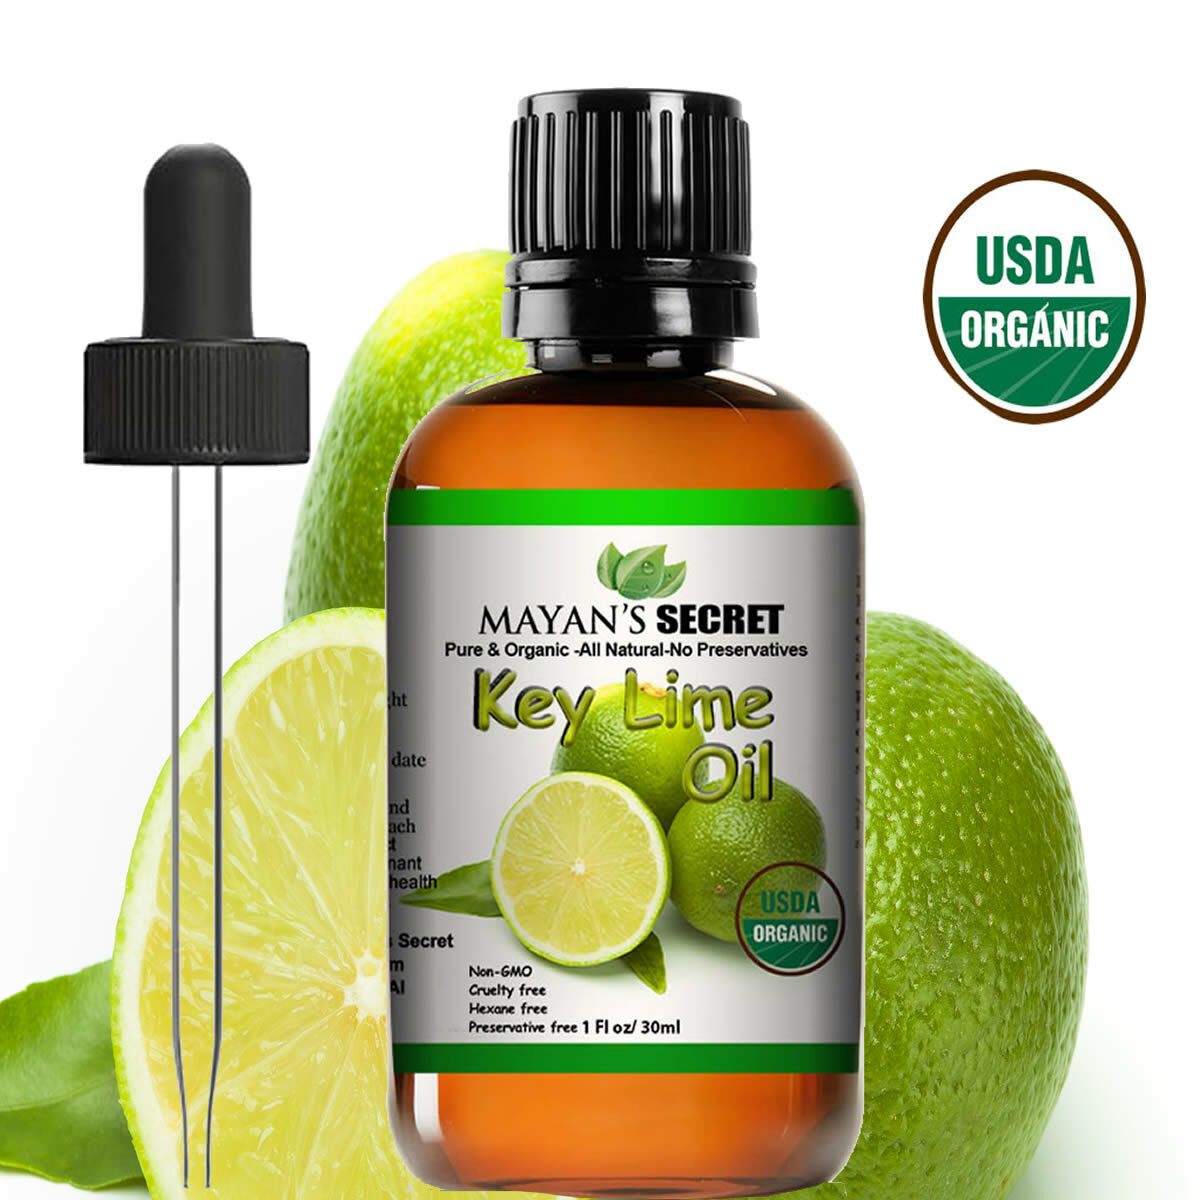 Mayan's Secret USDA Certified Organic Key Lime Essential Oil for Diffuser & Reed Aromatherapy